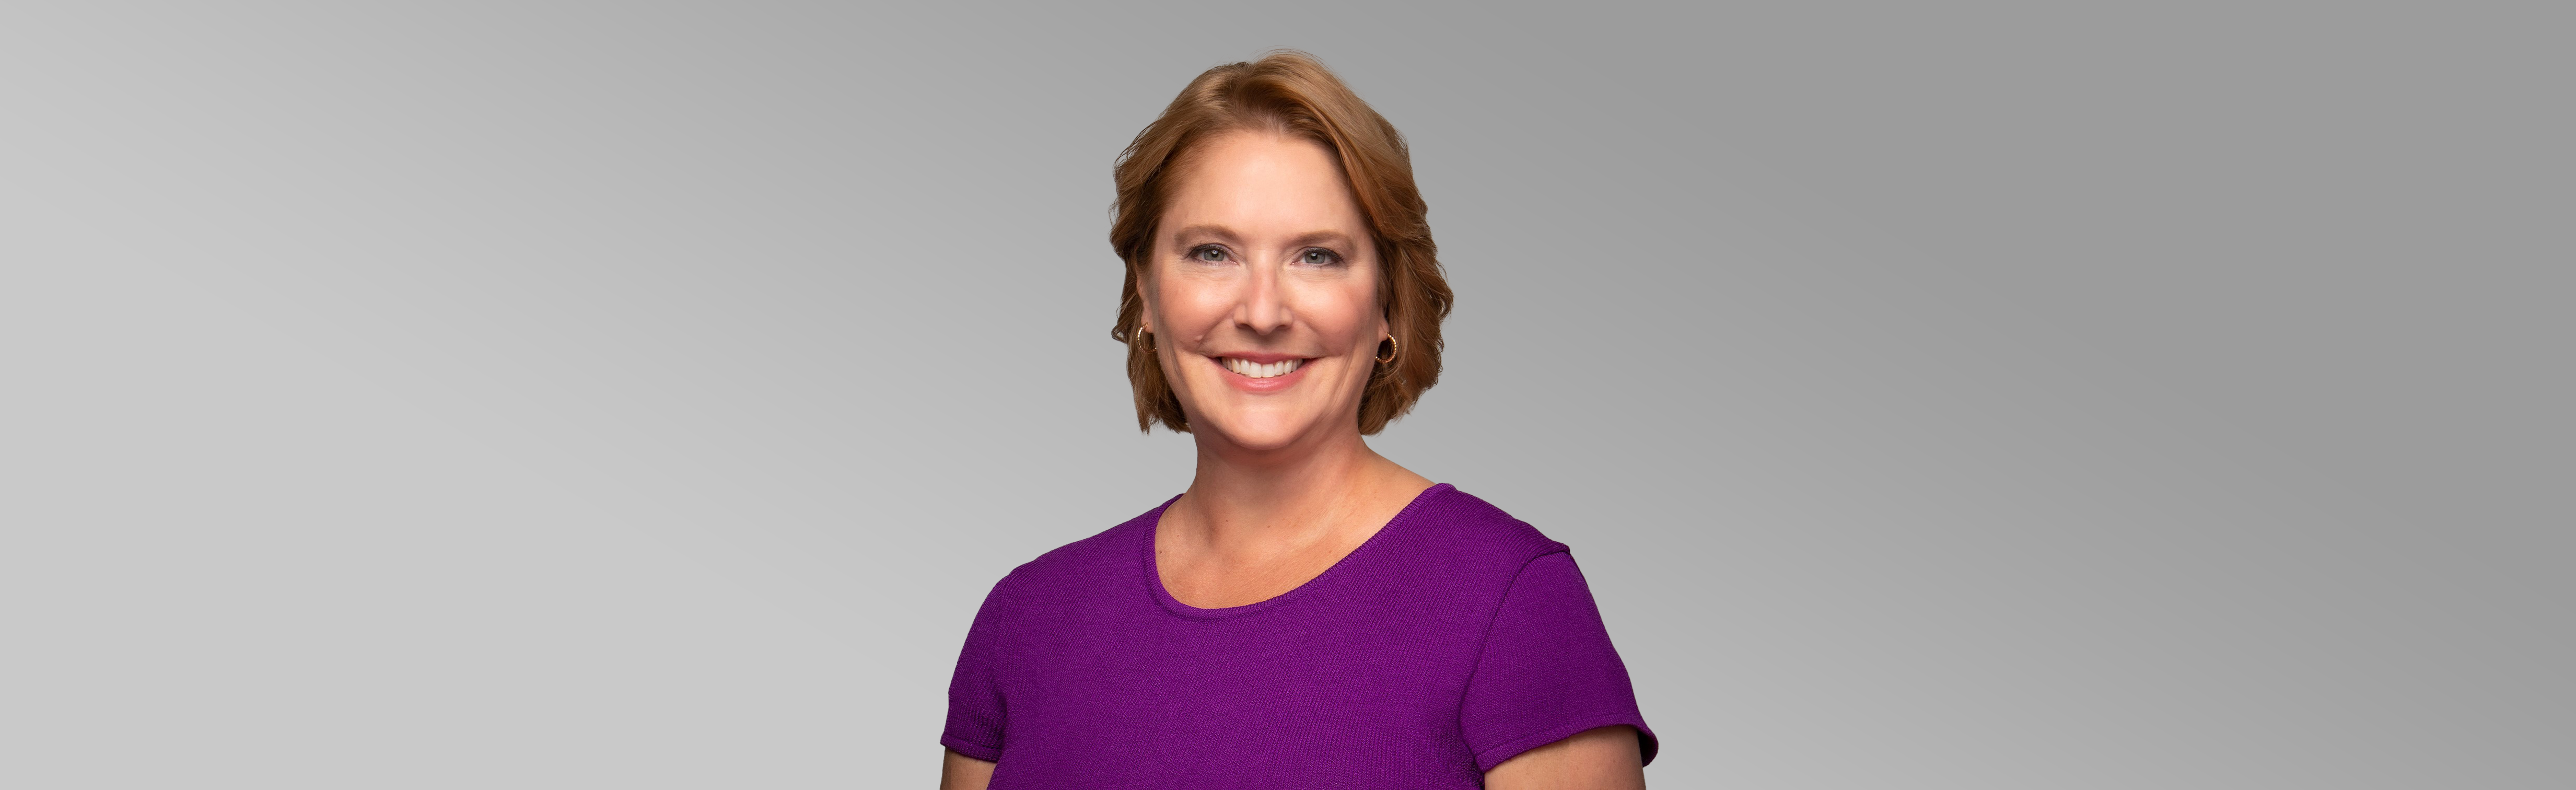 Photo of Geralyn Ritter, Head of Corporate Affairs and ESG